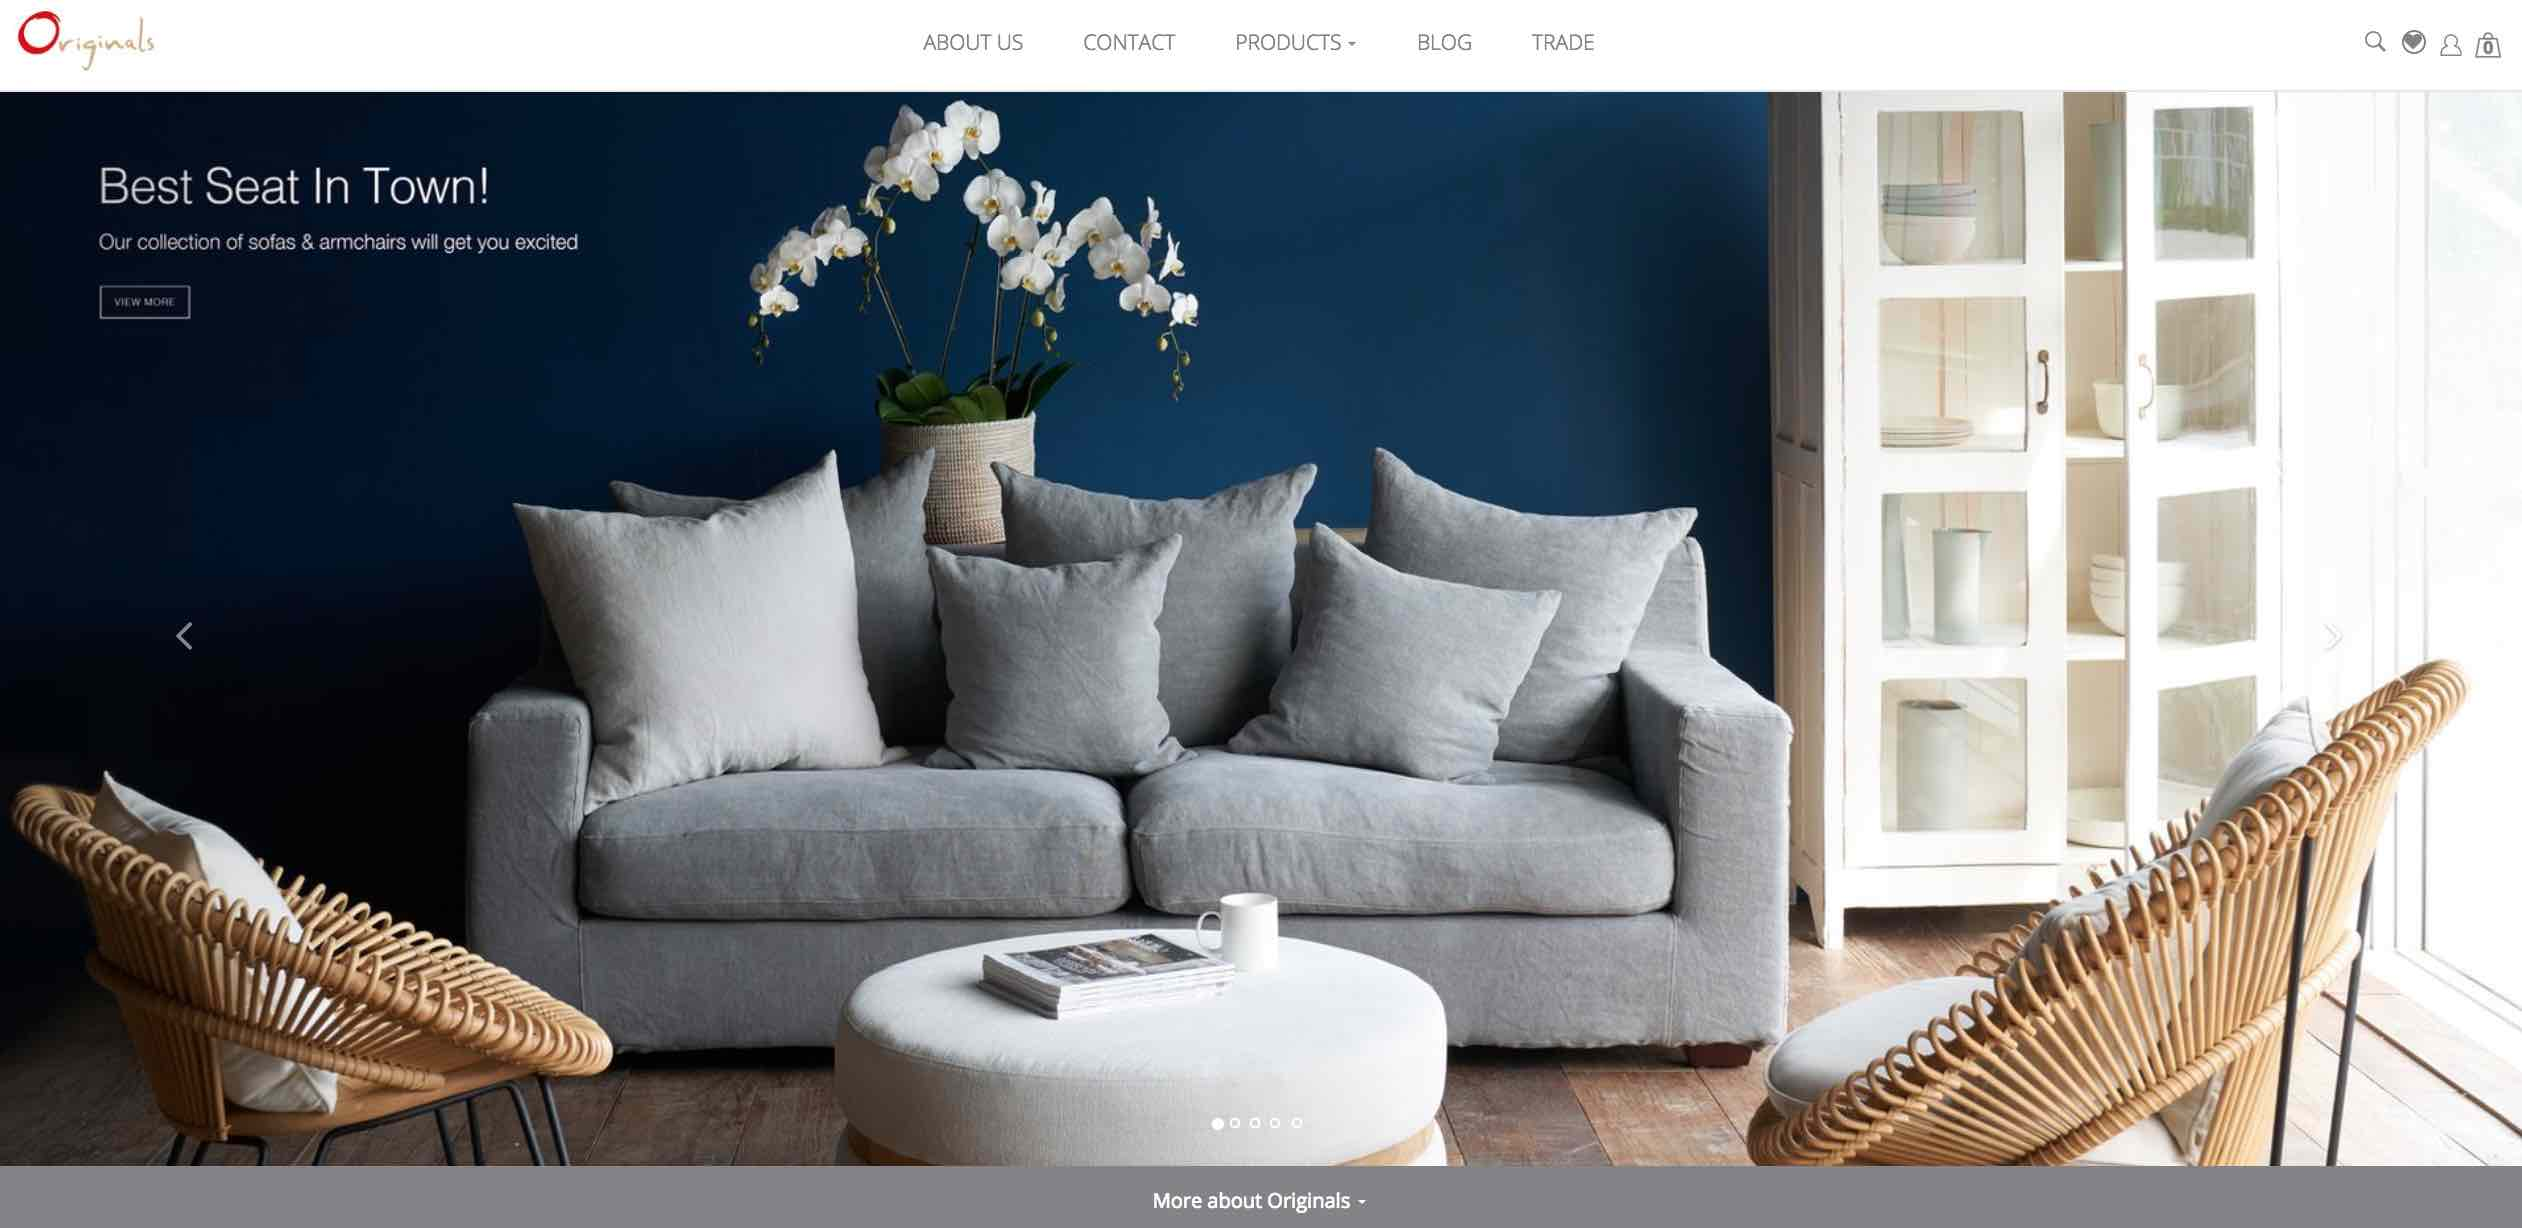 Top 8 affordable online furniture stores in singapore aspirantsg food travel lifestyle - Best online furniture stores ...